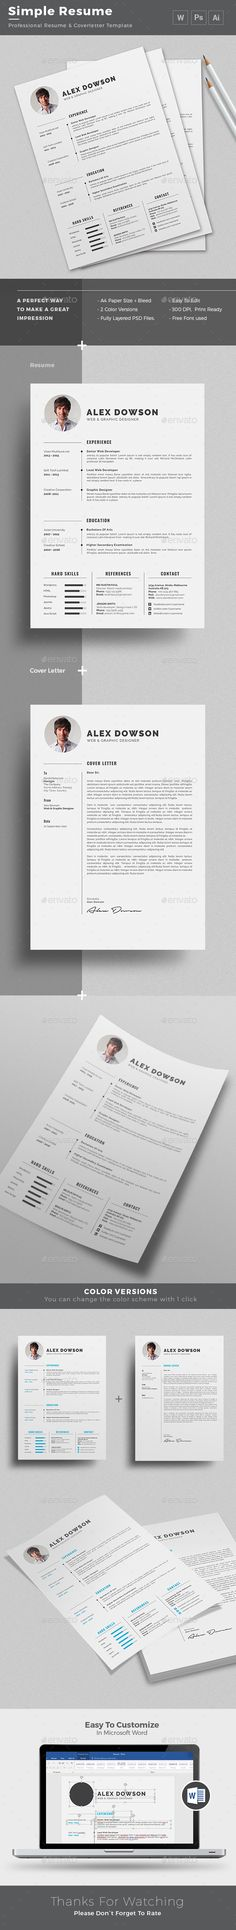 The CV Simple resume template, Cv resume template and Simple resume - simple resume templates free download